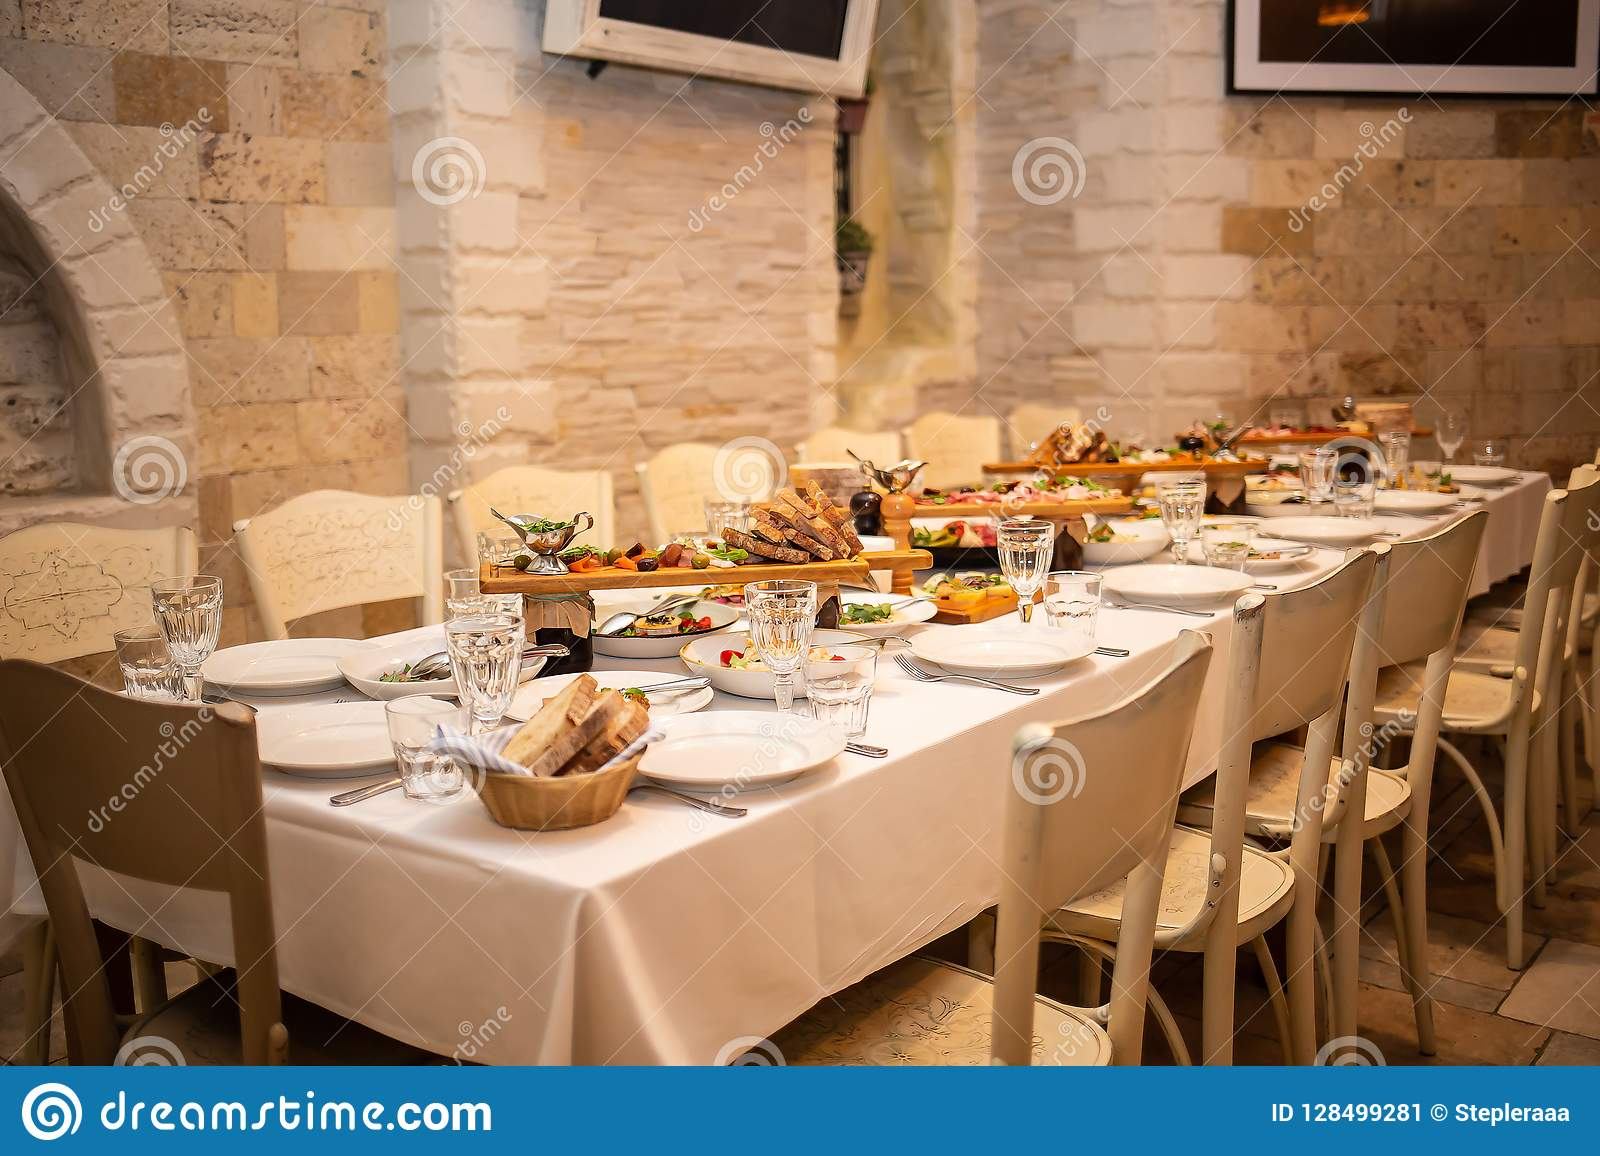 Table Setting In An Italian Restaurant Stock Image Image Of Sauce Dining 128499281